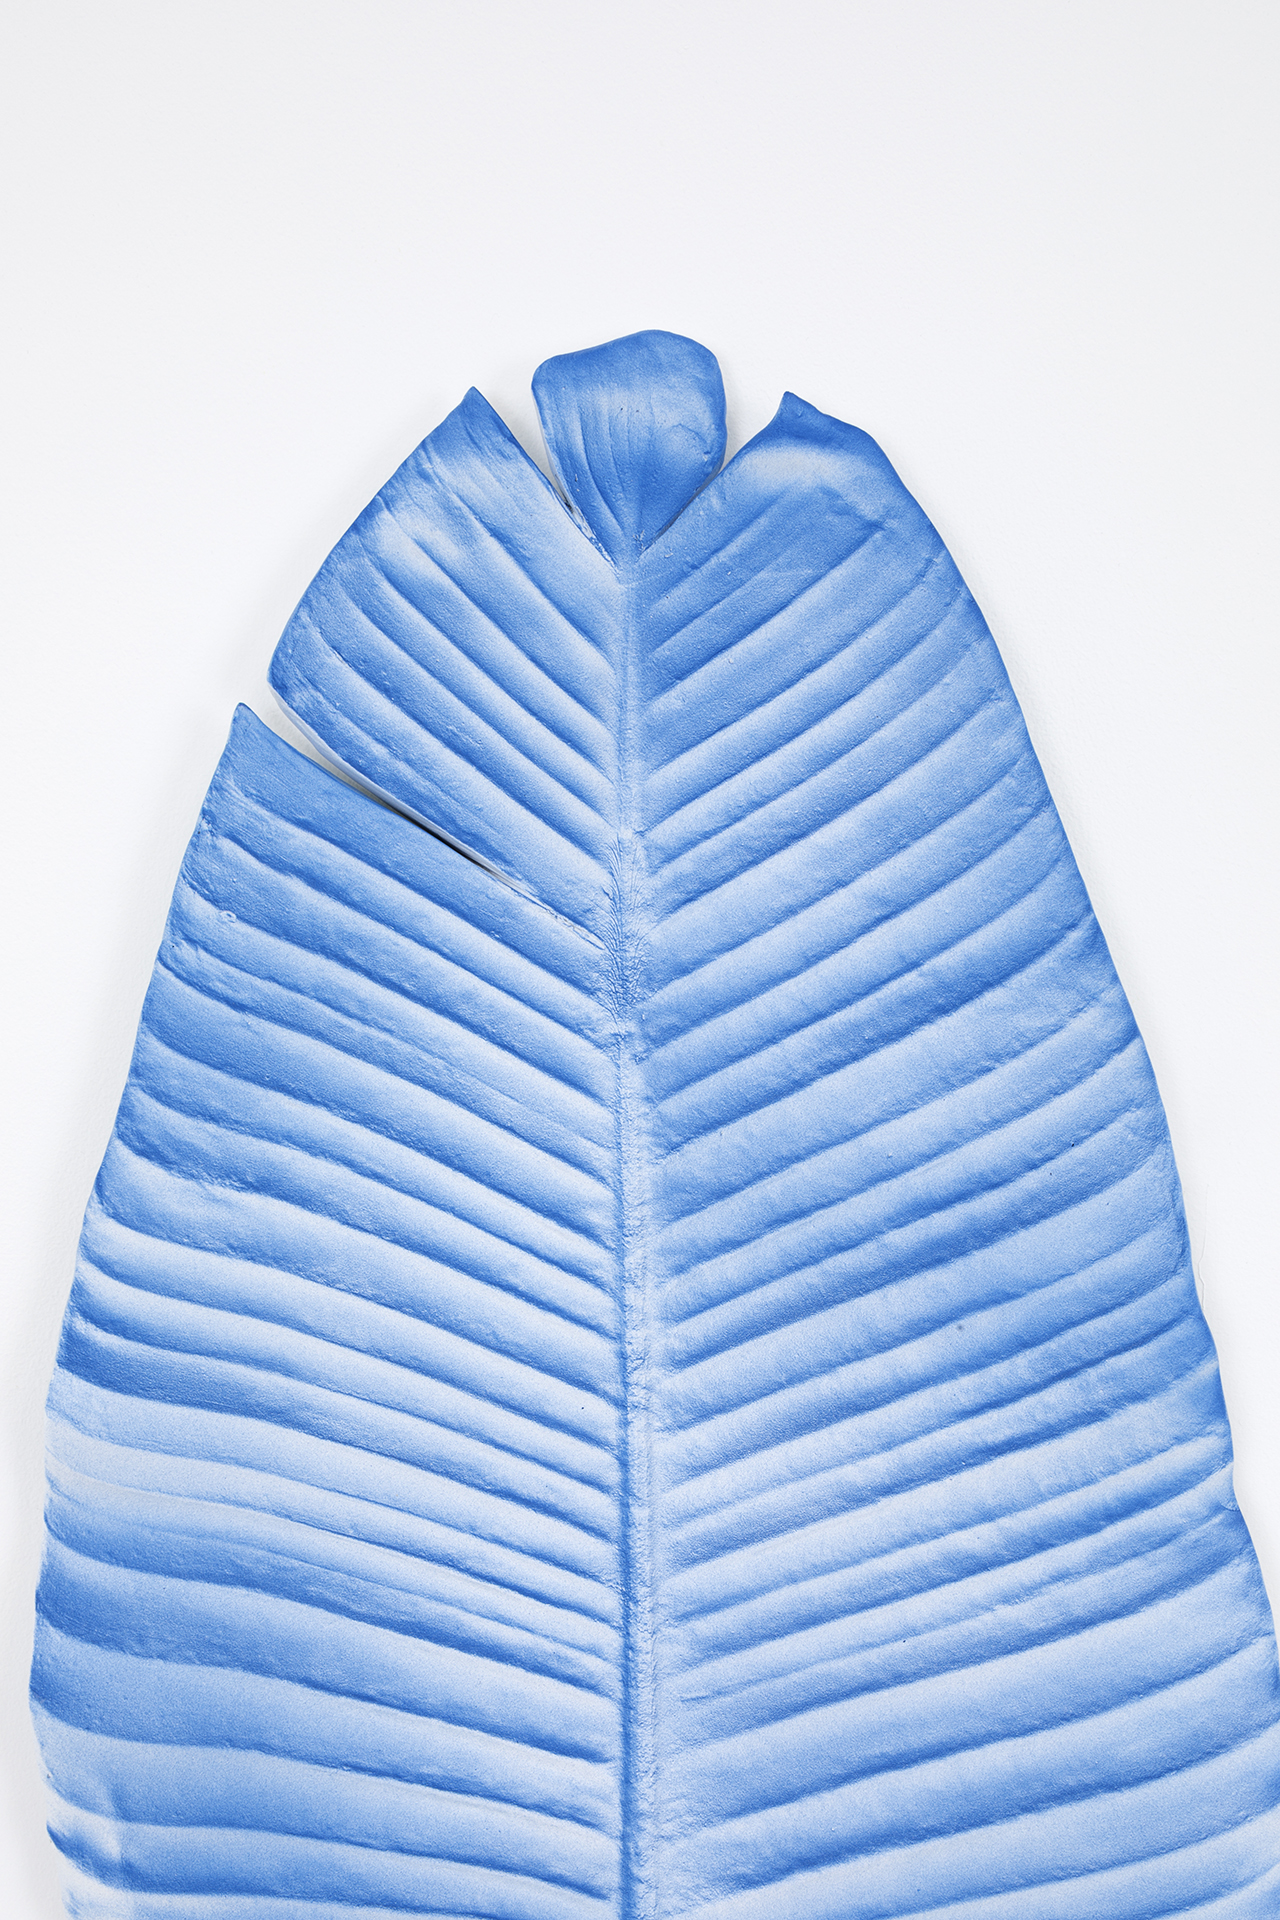 detail of blue leaf sculpture hanging on white wall